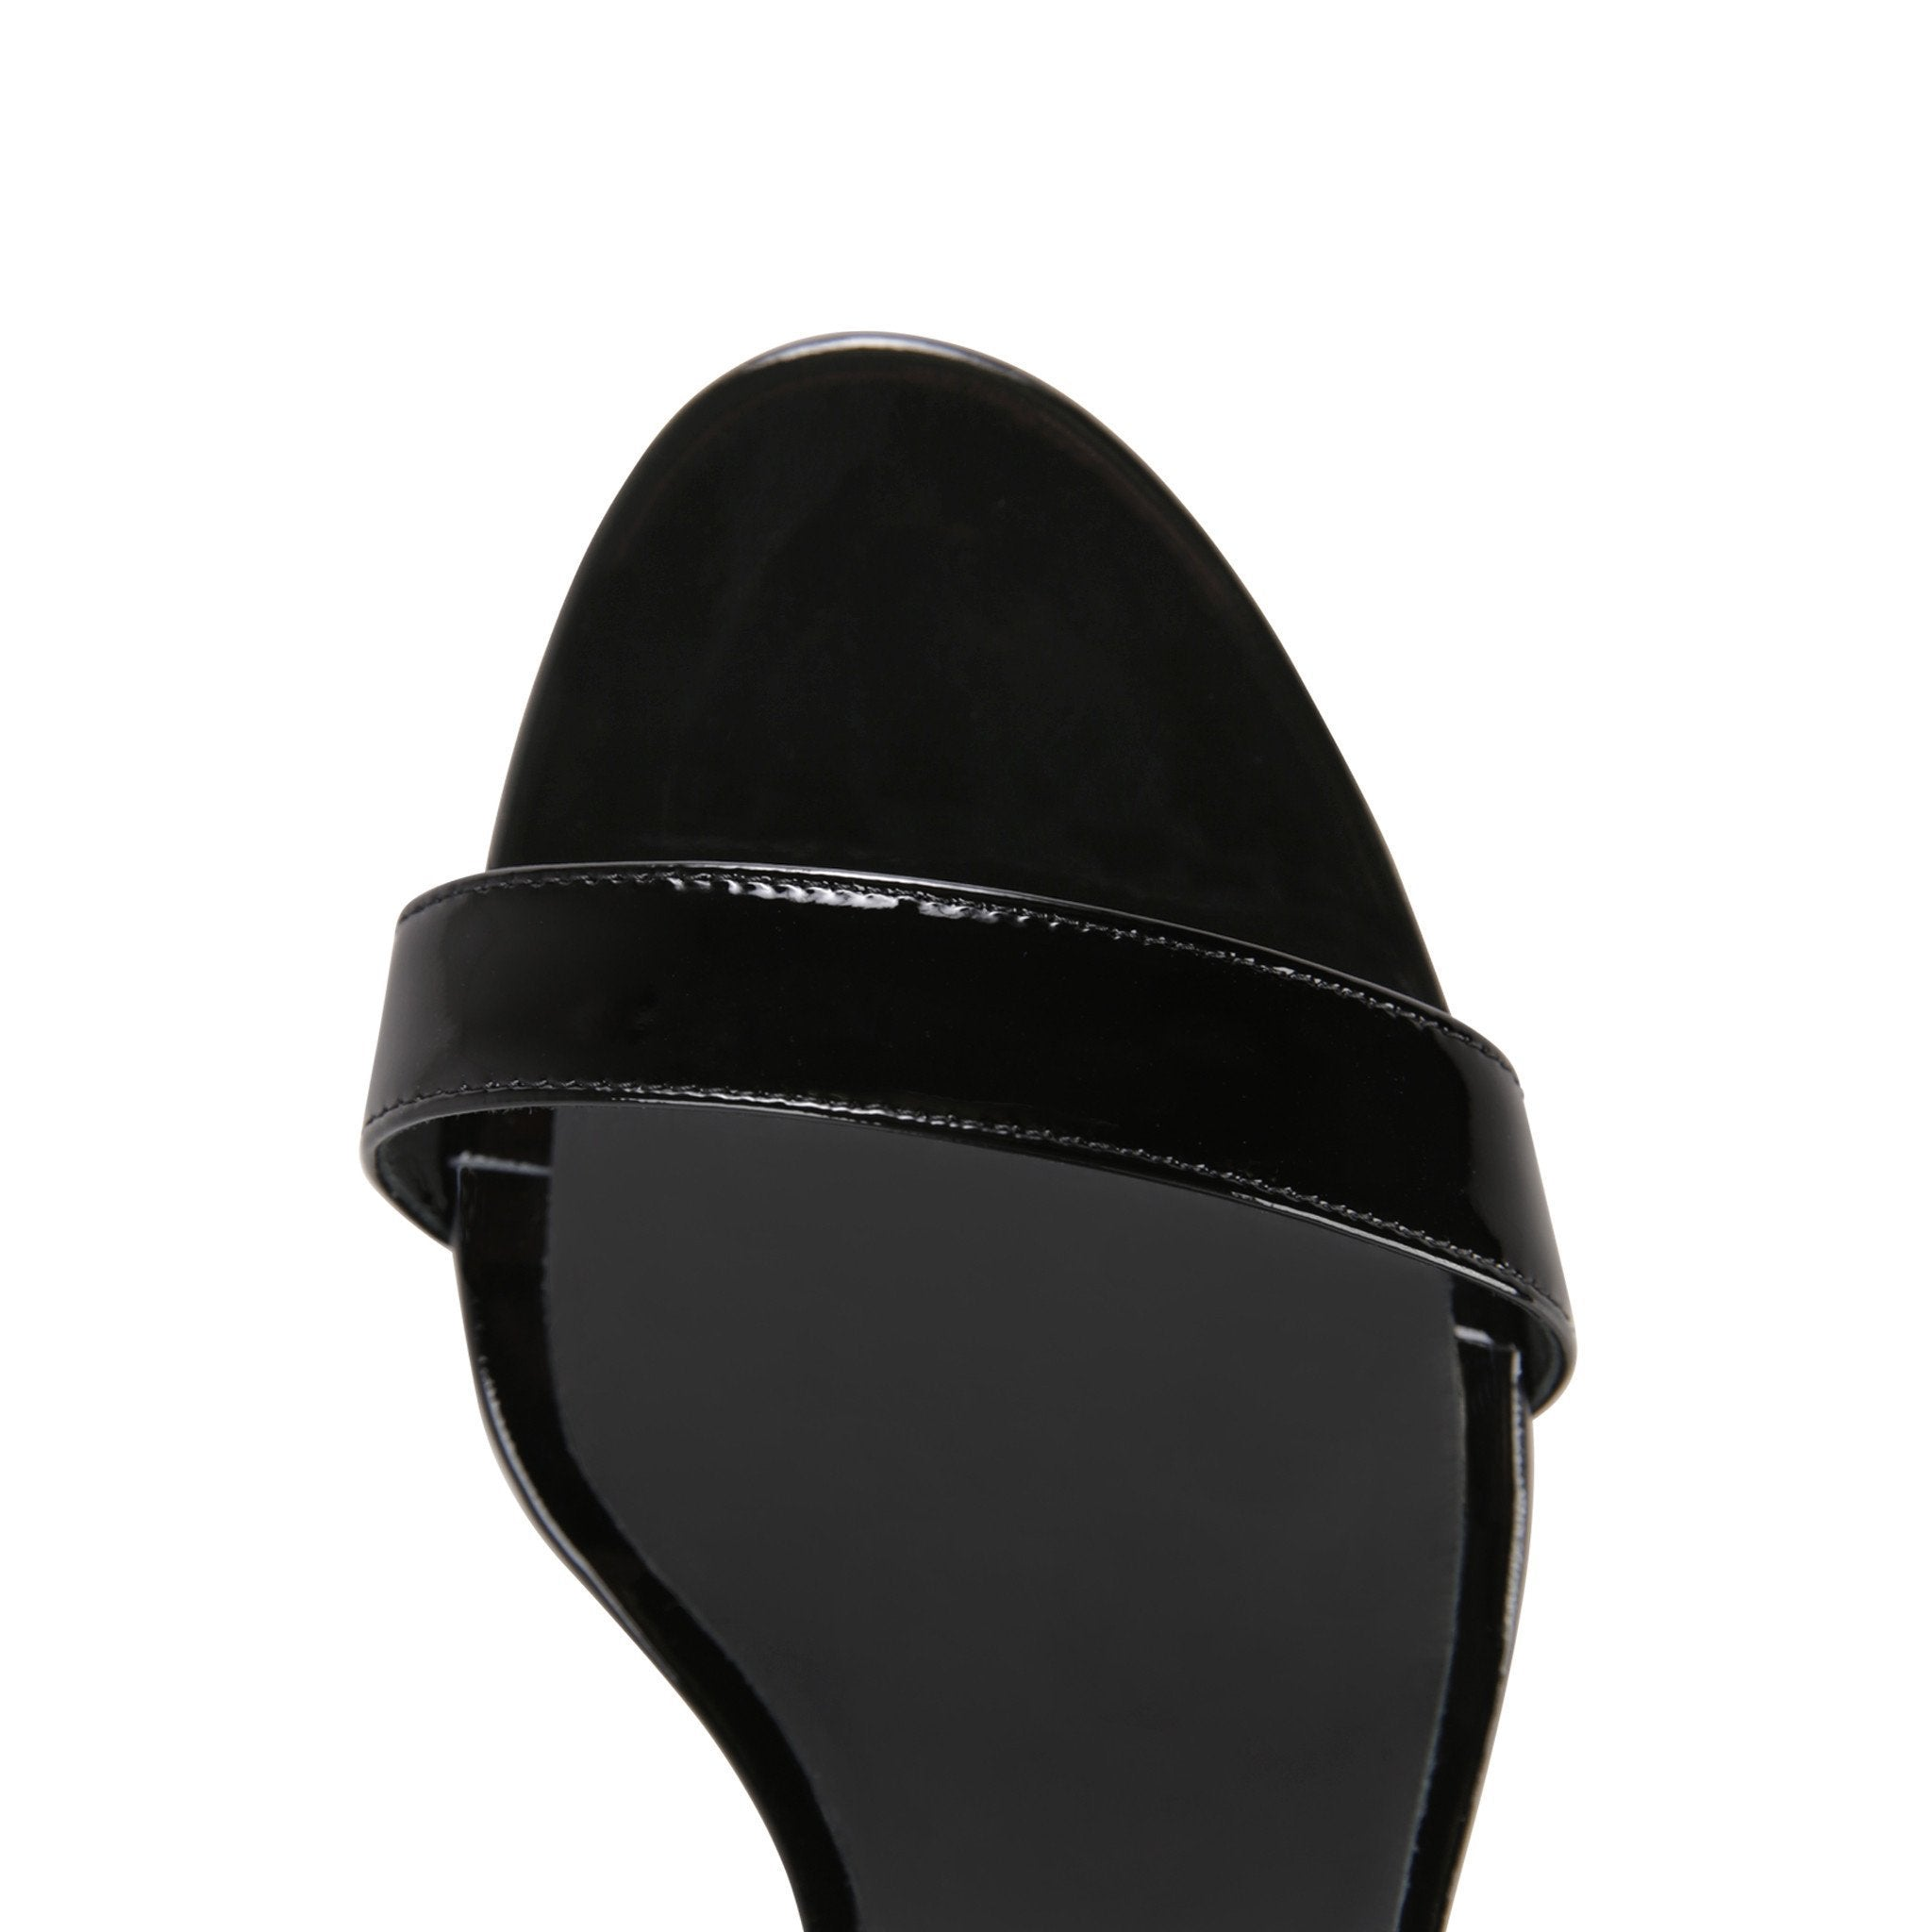 SAVONA - Patent Nero, VIAJIYU - Women's Hand Made Sustainable Luxury Shoes. Made in Italy. Made to Order.